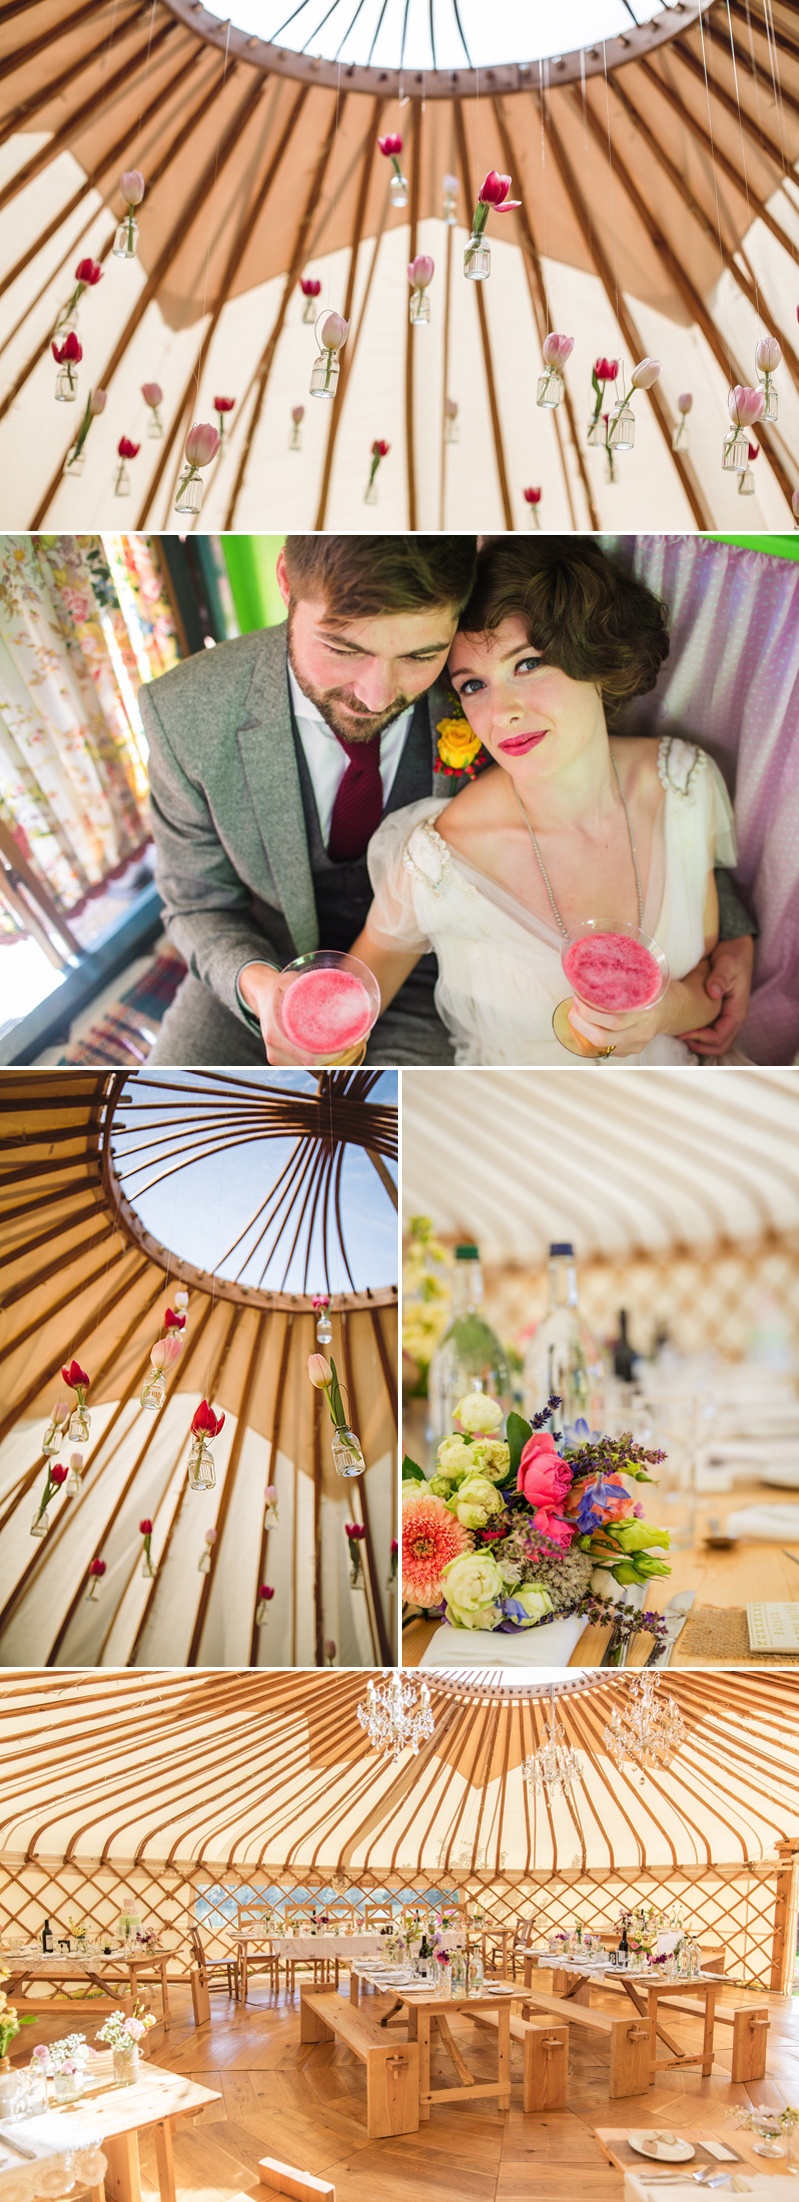 coco-wedding-venues-wedding-yurts-the-practical-guide-to-hiring-wedding-yurts-1